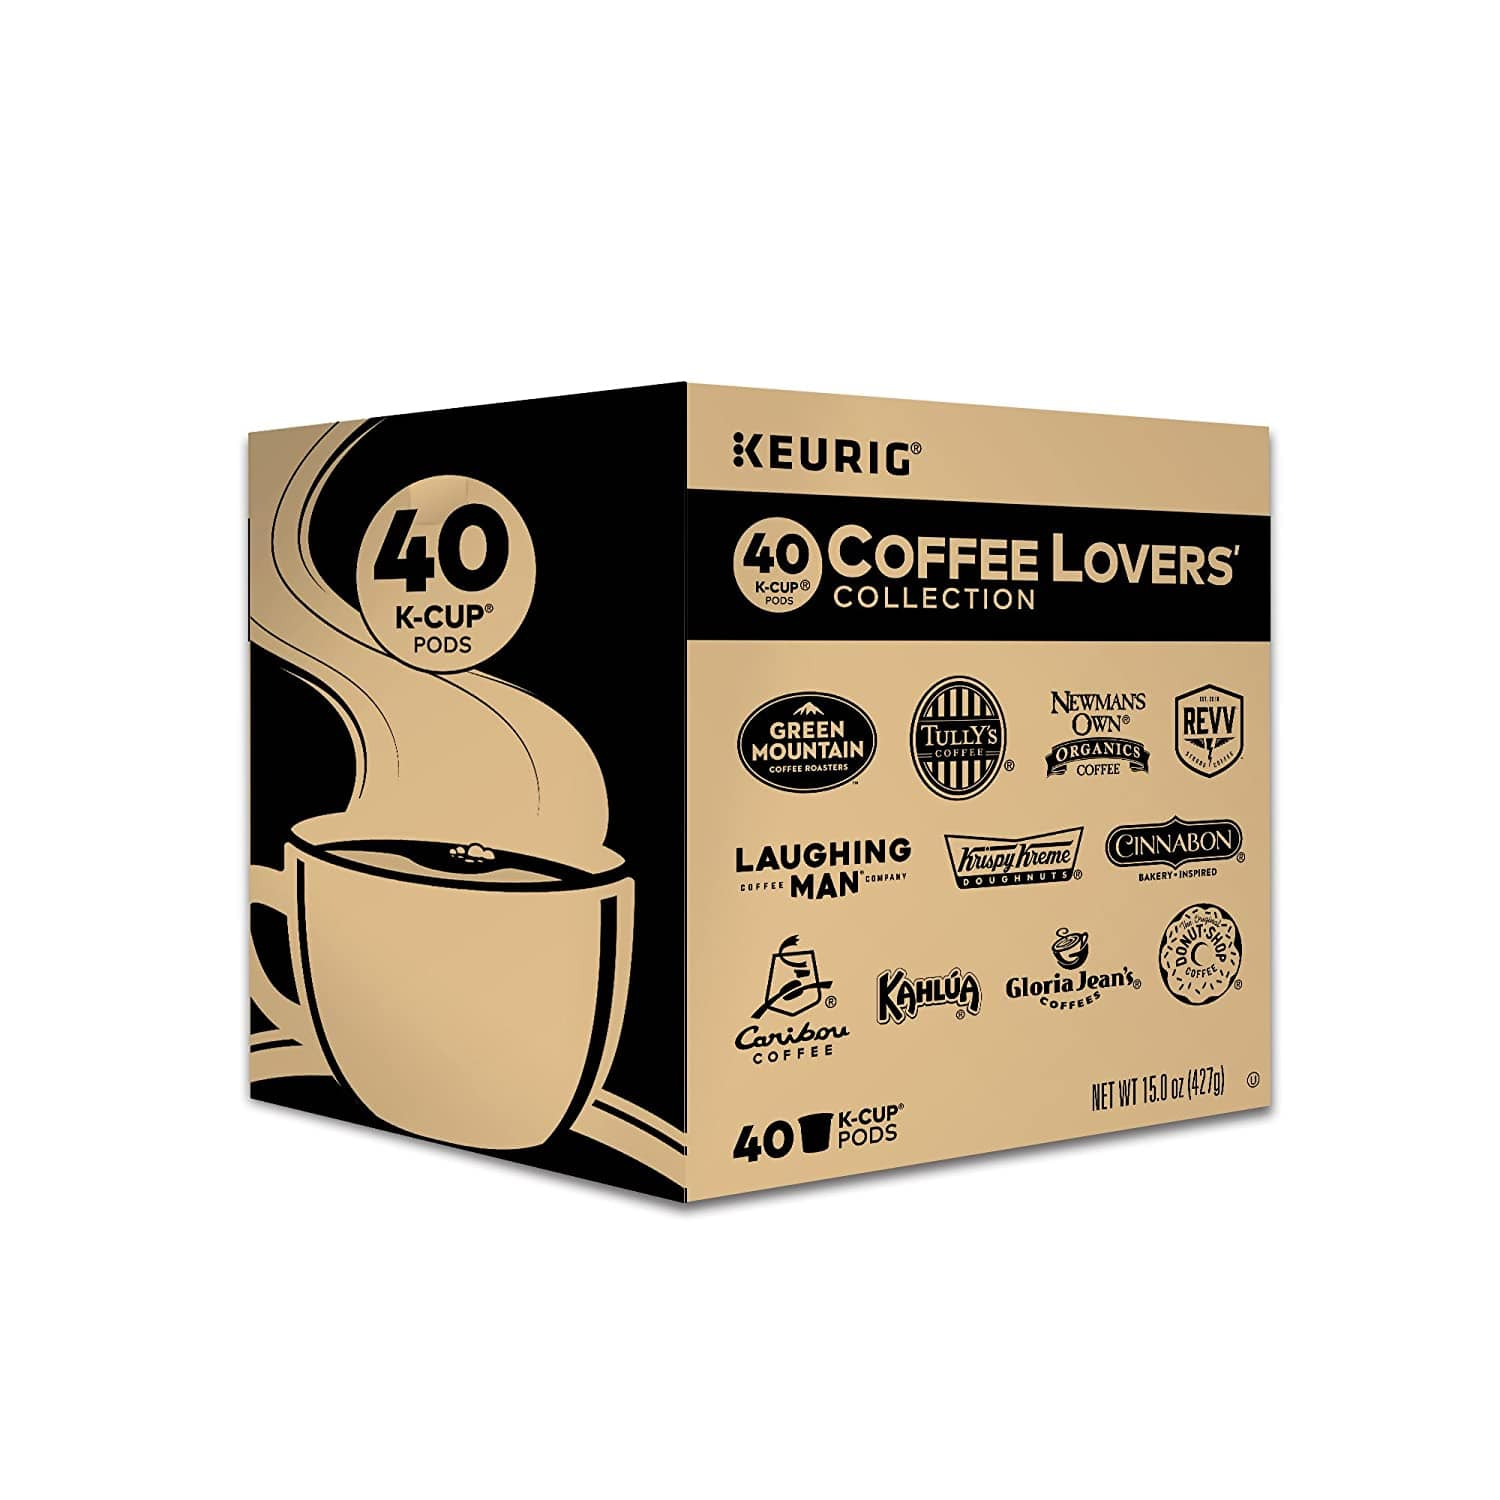 Keurig Coffee Lovers' Collection Variety Pack K-Cup Sampler (40 Count, $0.31 each) $12.34 @ Amazon